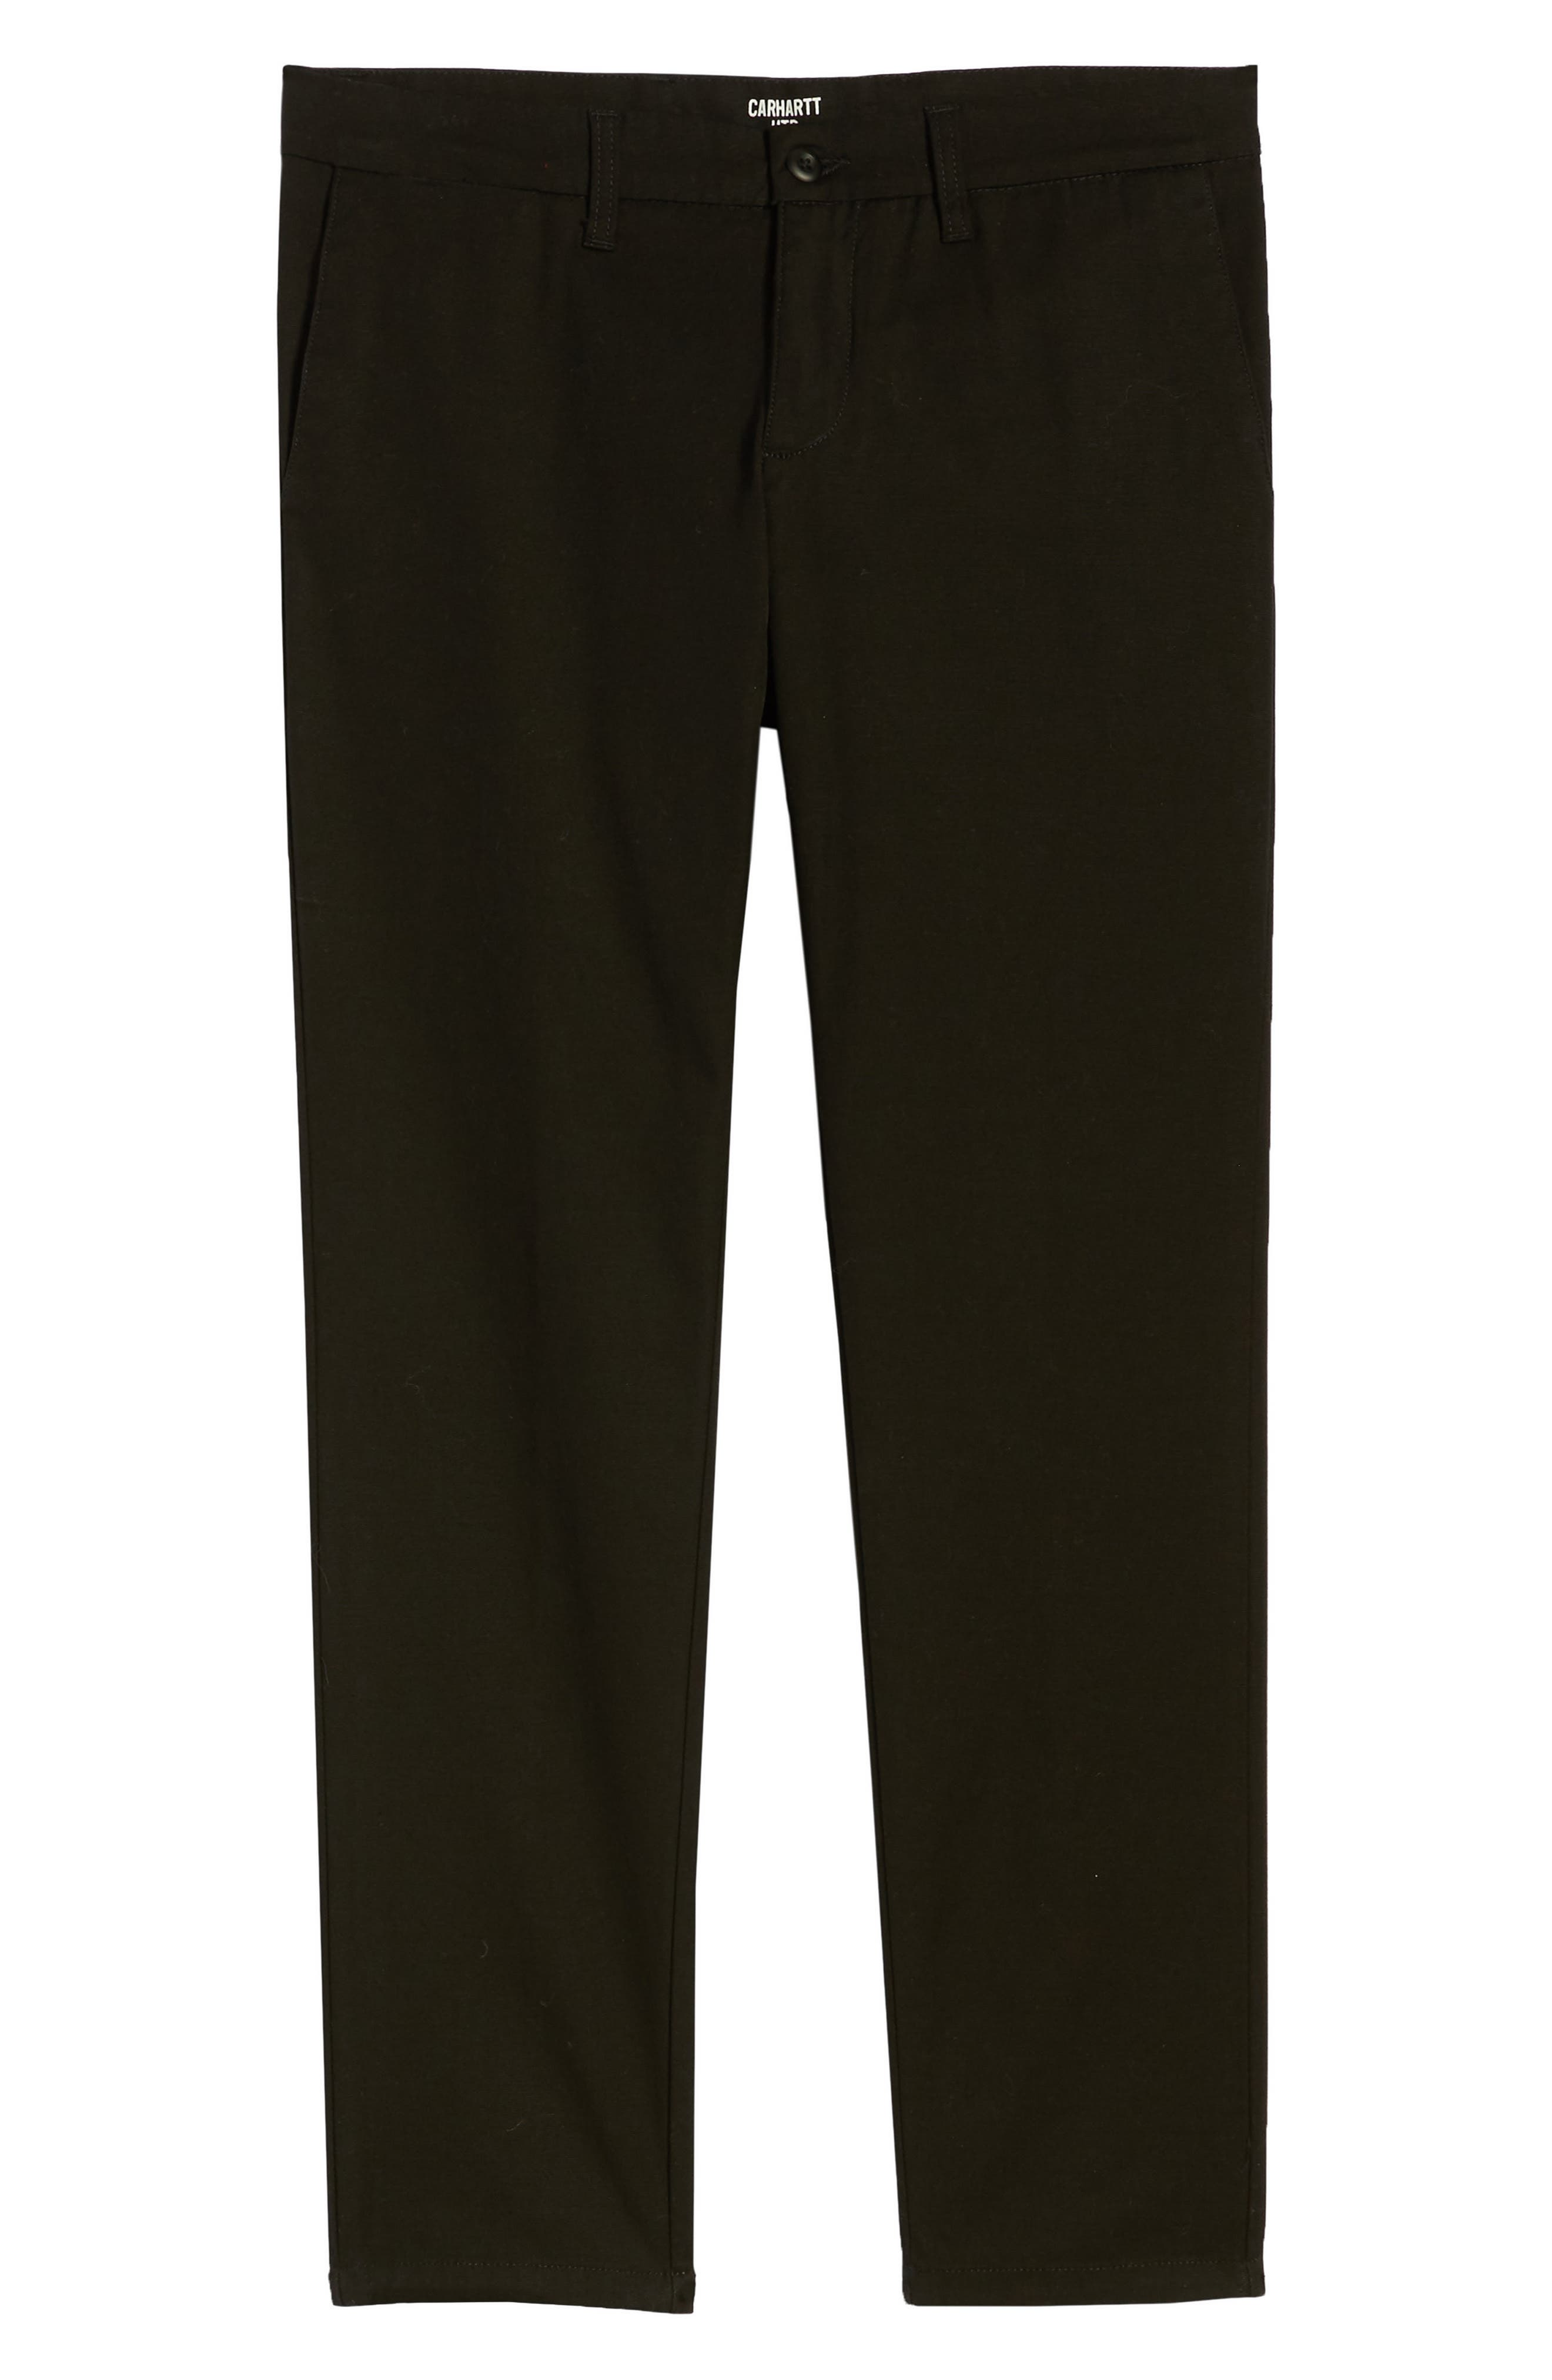 Sid Slim Fit Chinos,                             Alternate thumbnail 6, color,                             001